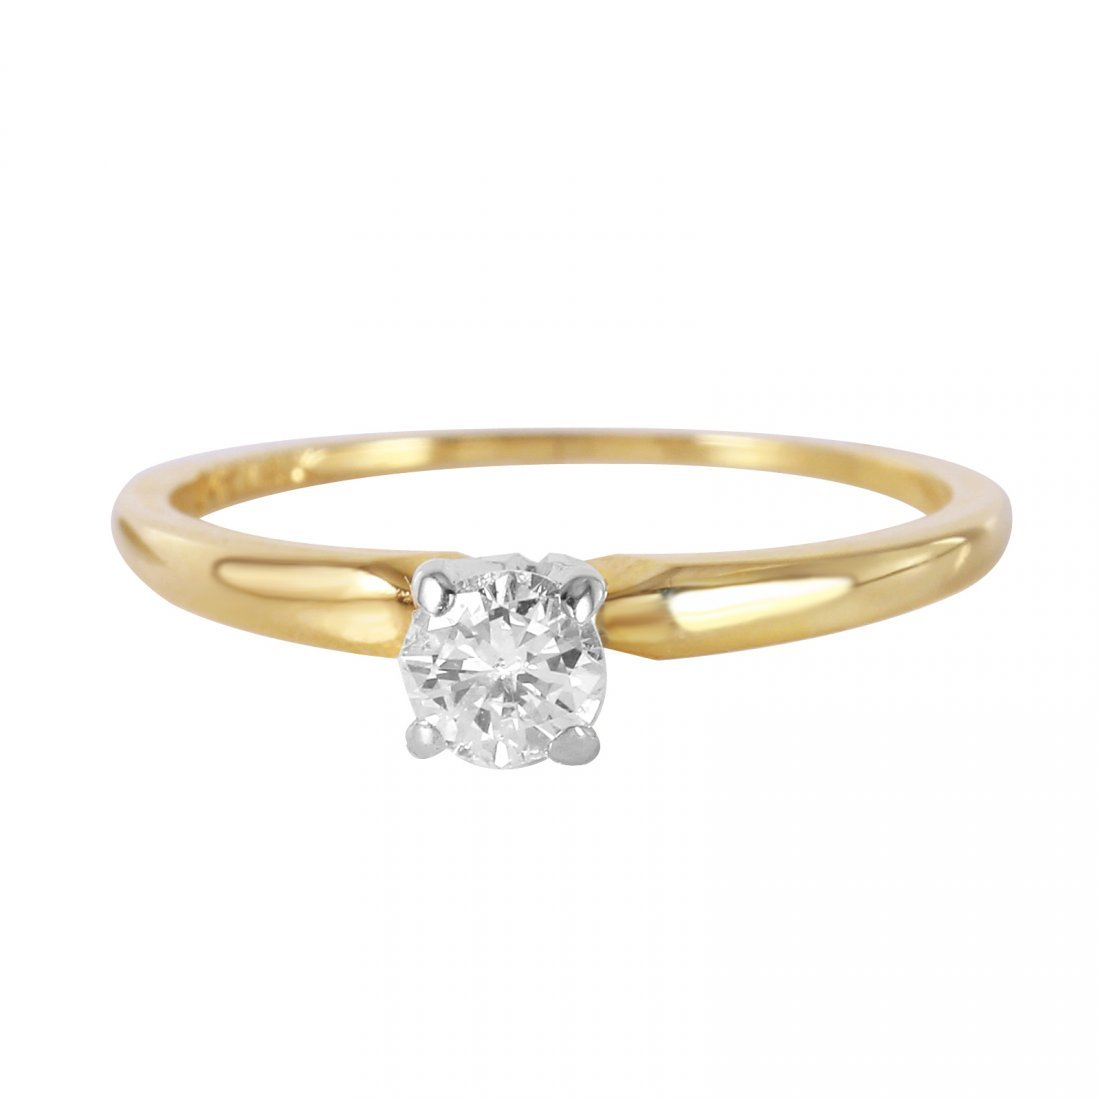 14K Yellow Gold Diamond Solitaire Ring, 0.25 cts - 2